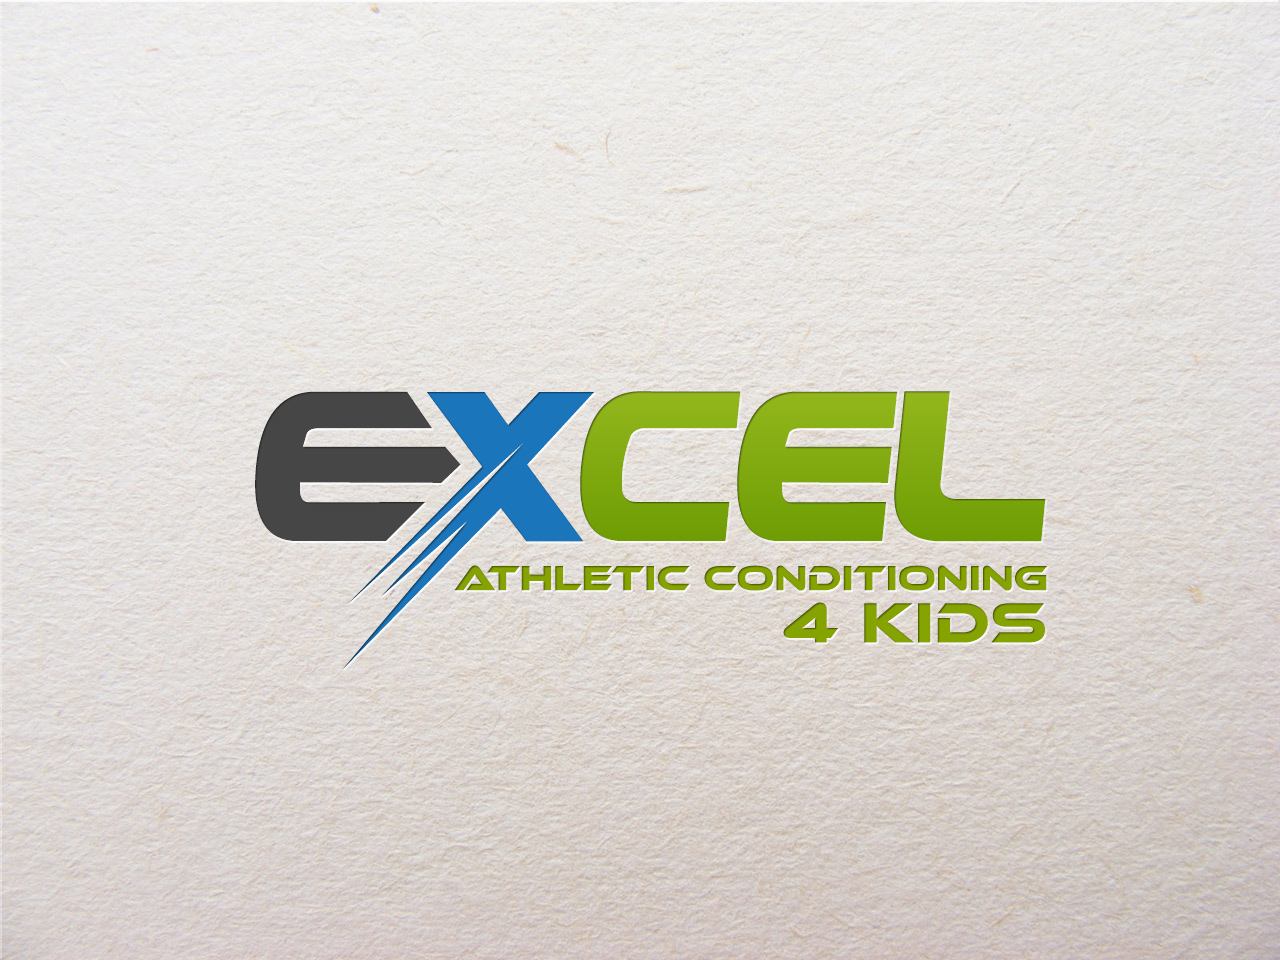 Logo Design by jpbituin - Entry No. 22 in the Logo Design Contest Artistic Logo Design for Excel Athletic Conditioning 4 kids.